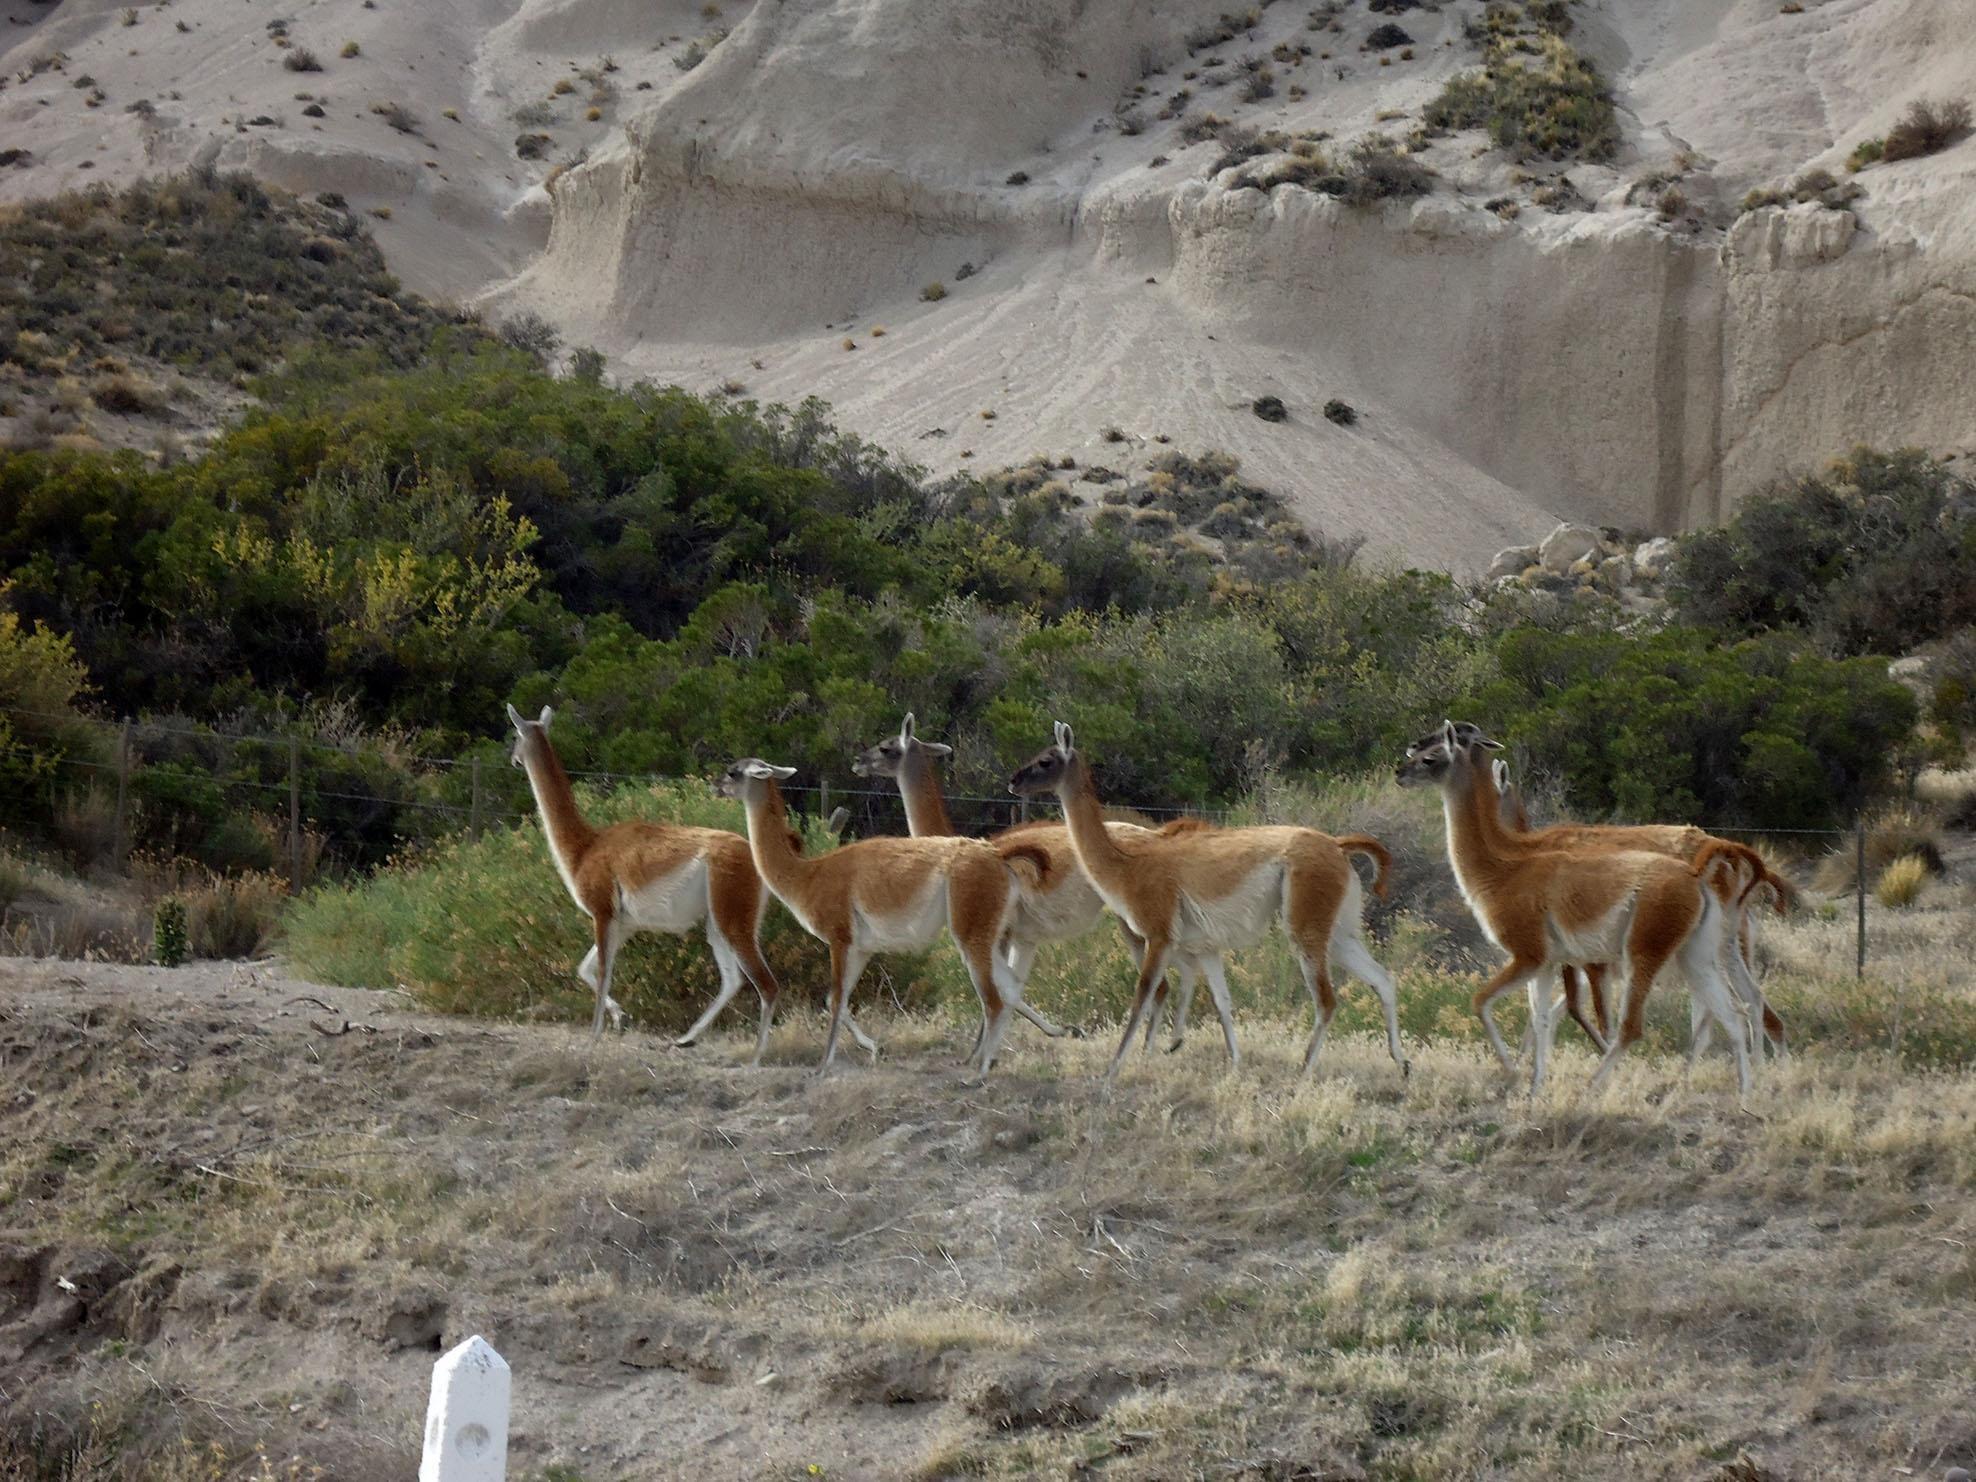 Guanacos on the Trail